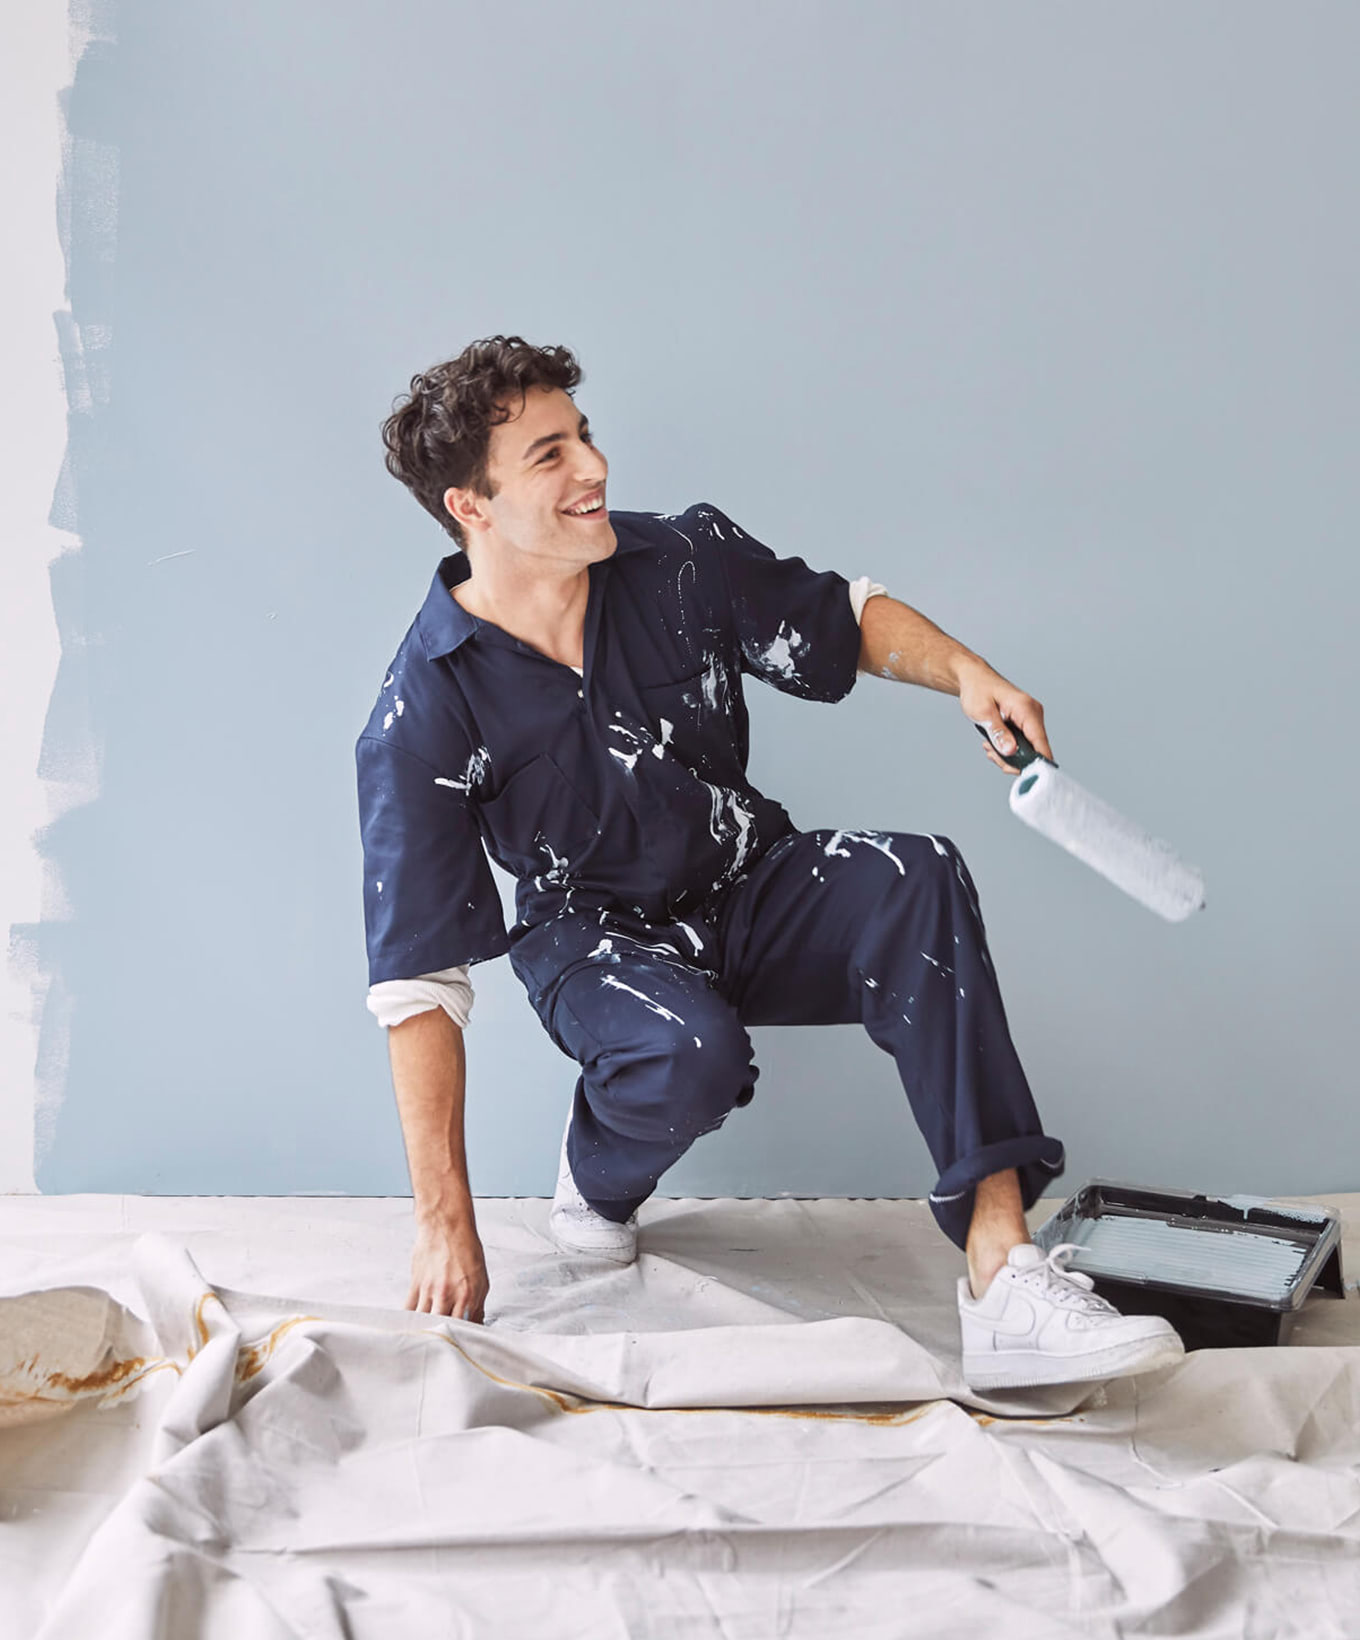 Paint stained man with roller smiling and painting wall